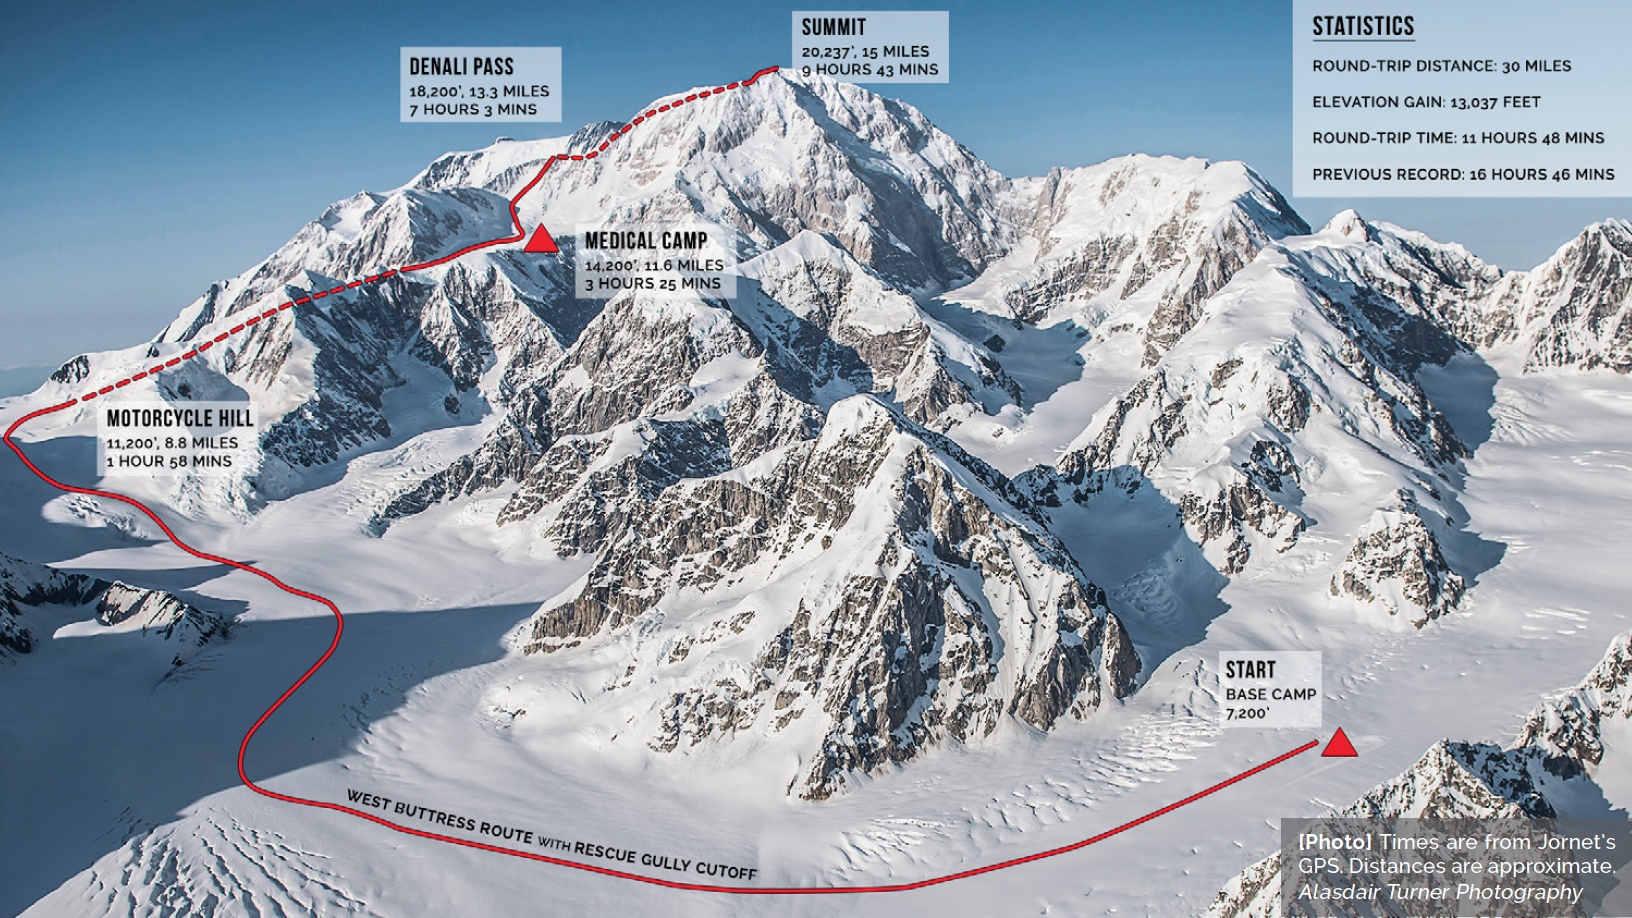 Kilian's route and split times from his Denali climb.